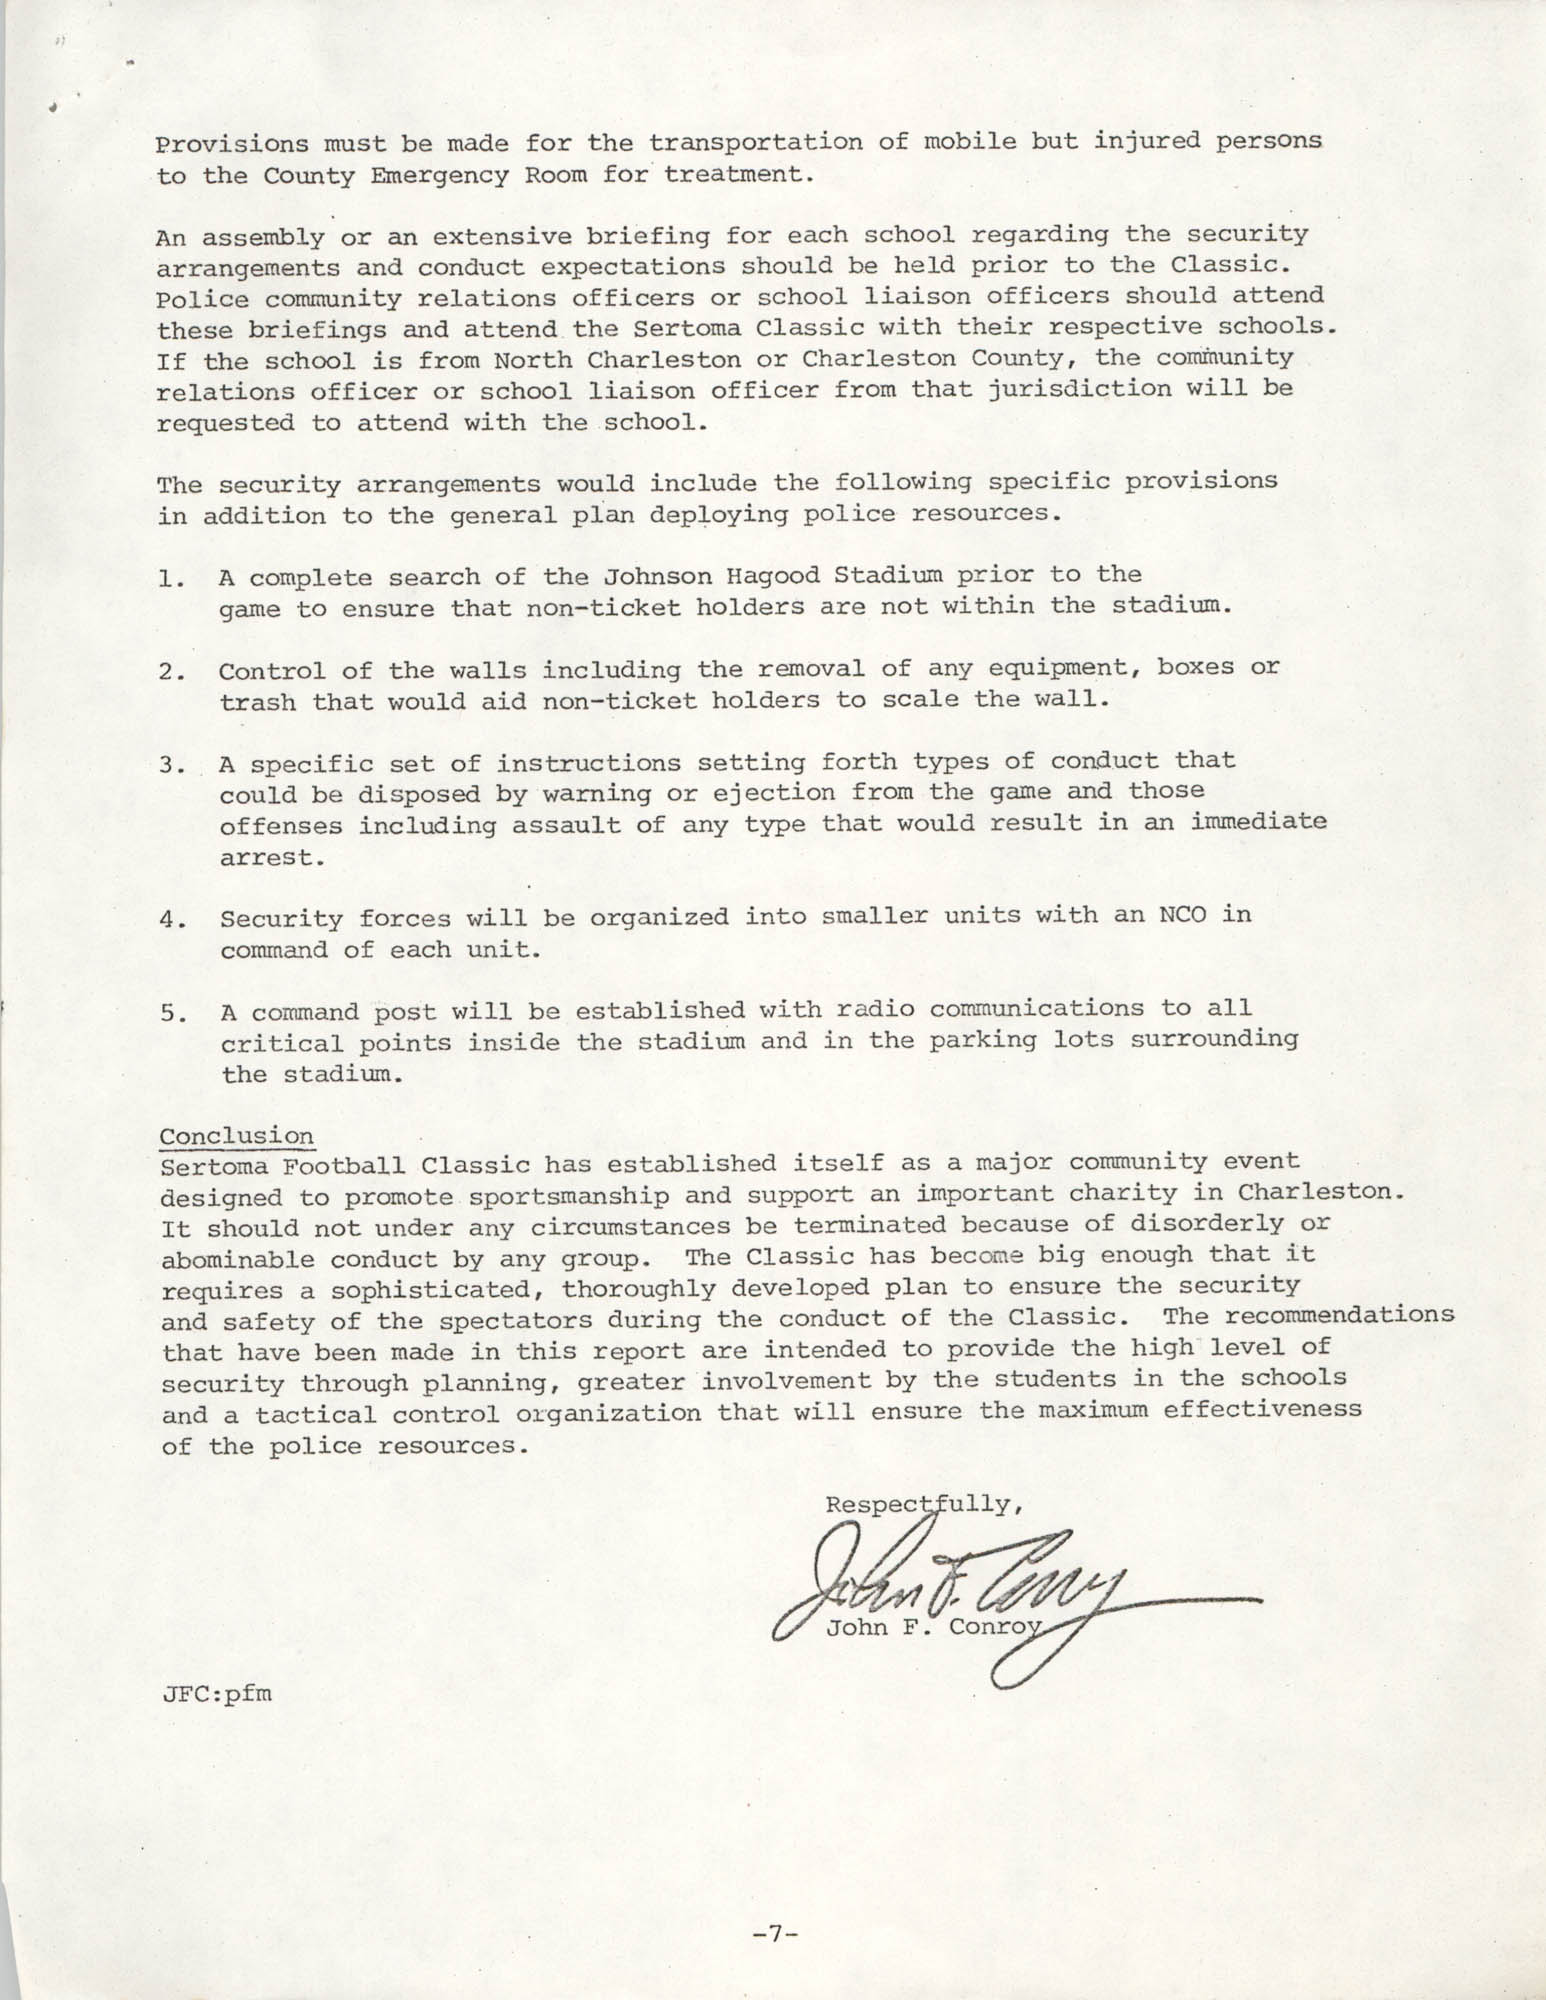 City of Charleston South Carolina Police Department Memorandum, September 6, 1977, Page 7